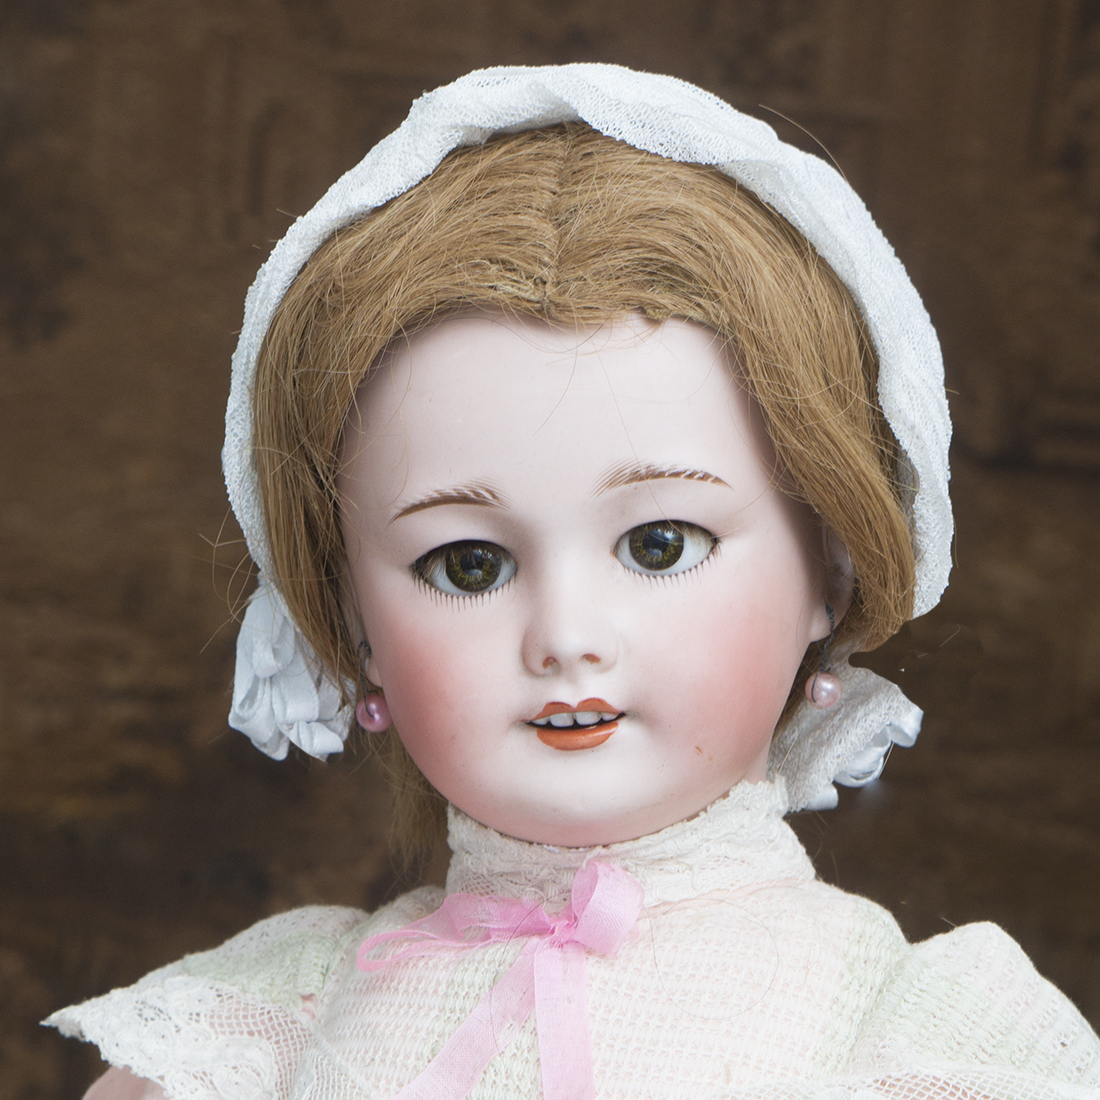 SFBJ PARIS 301 doll